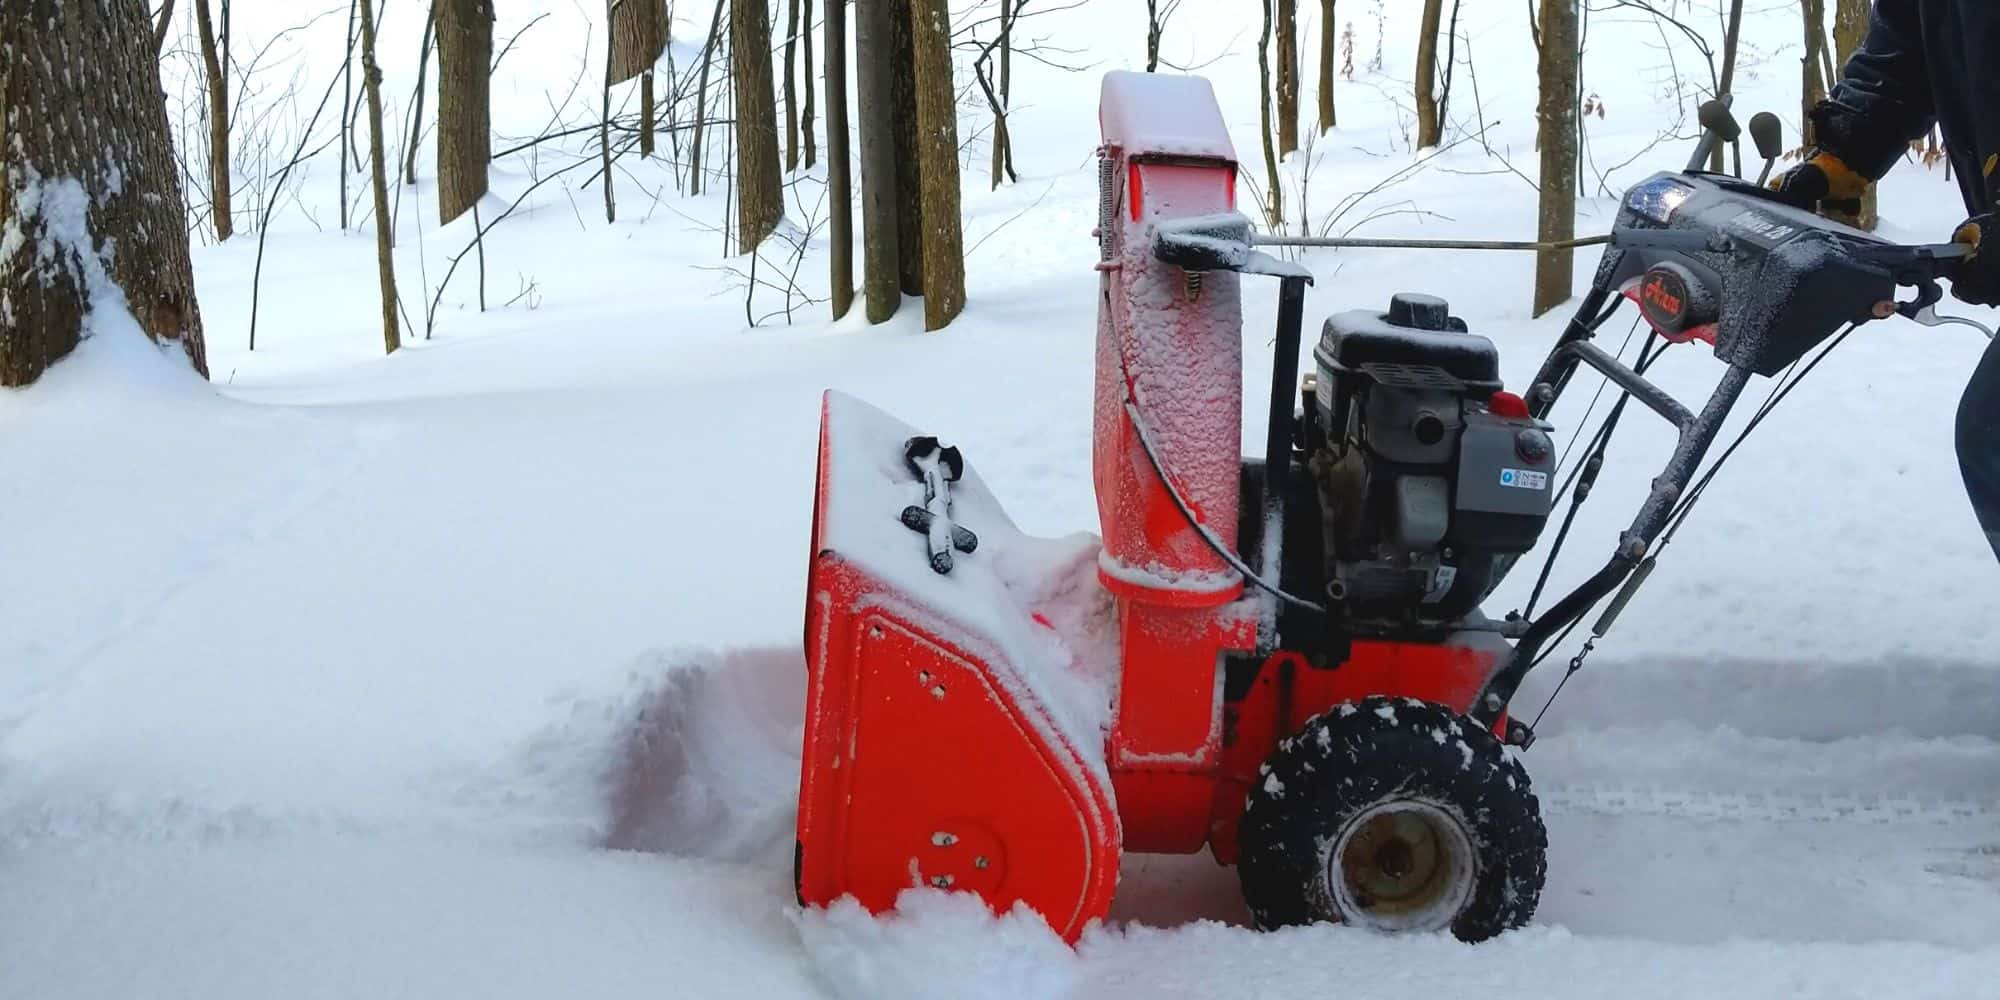 A Gas Snow Blower in snow